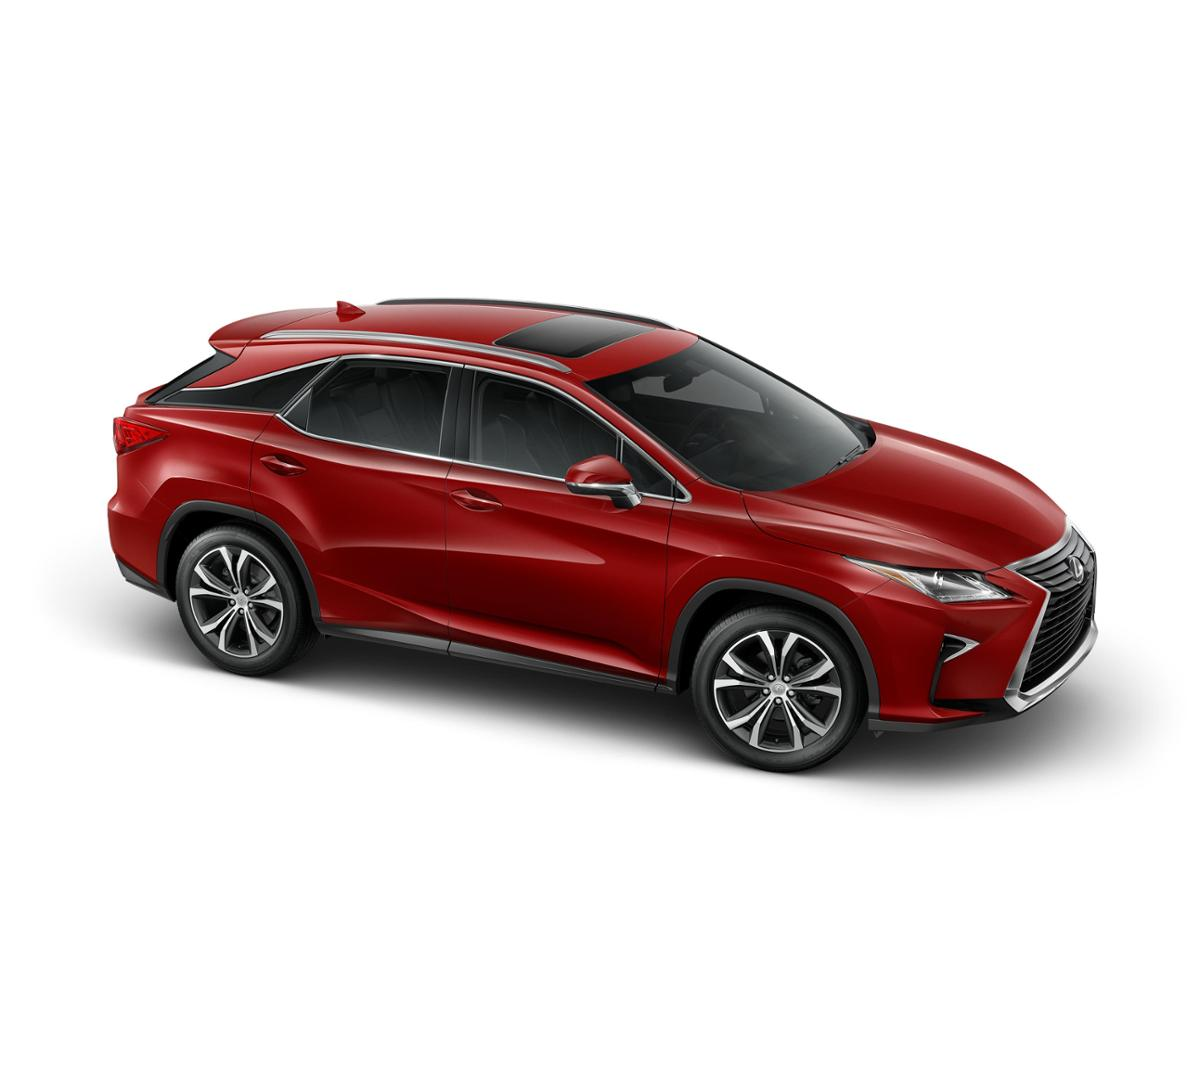 Lexus Rx 350 Lease: New 2018 Matador Red Mica Lexus RX 350 For Sale In